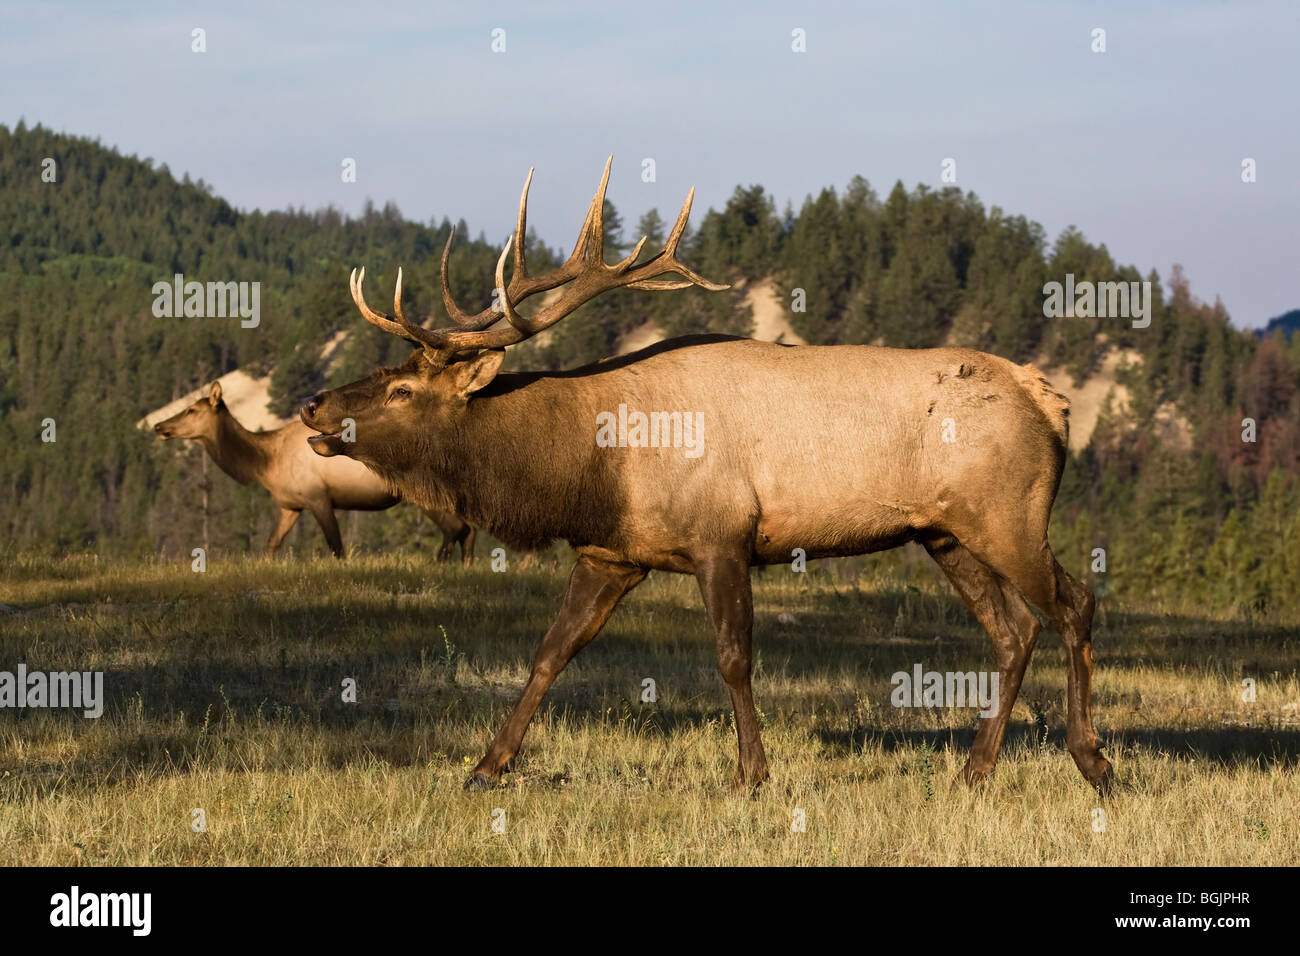 A handsome Bull Elk strutting his dominance during the fall rut - Stock Image